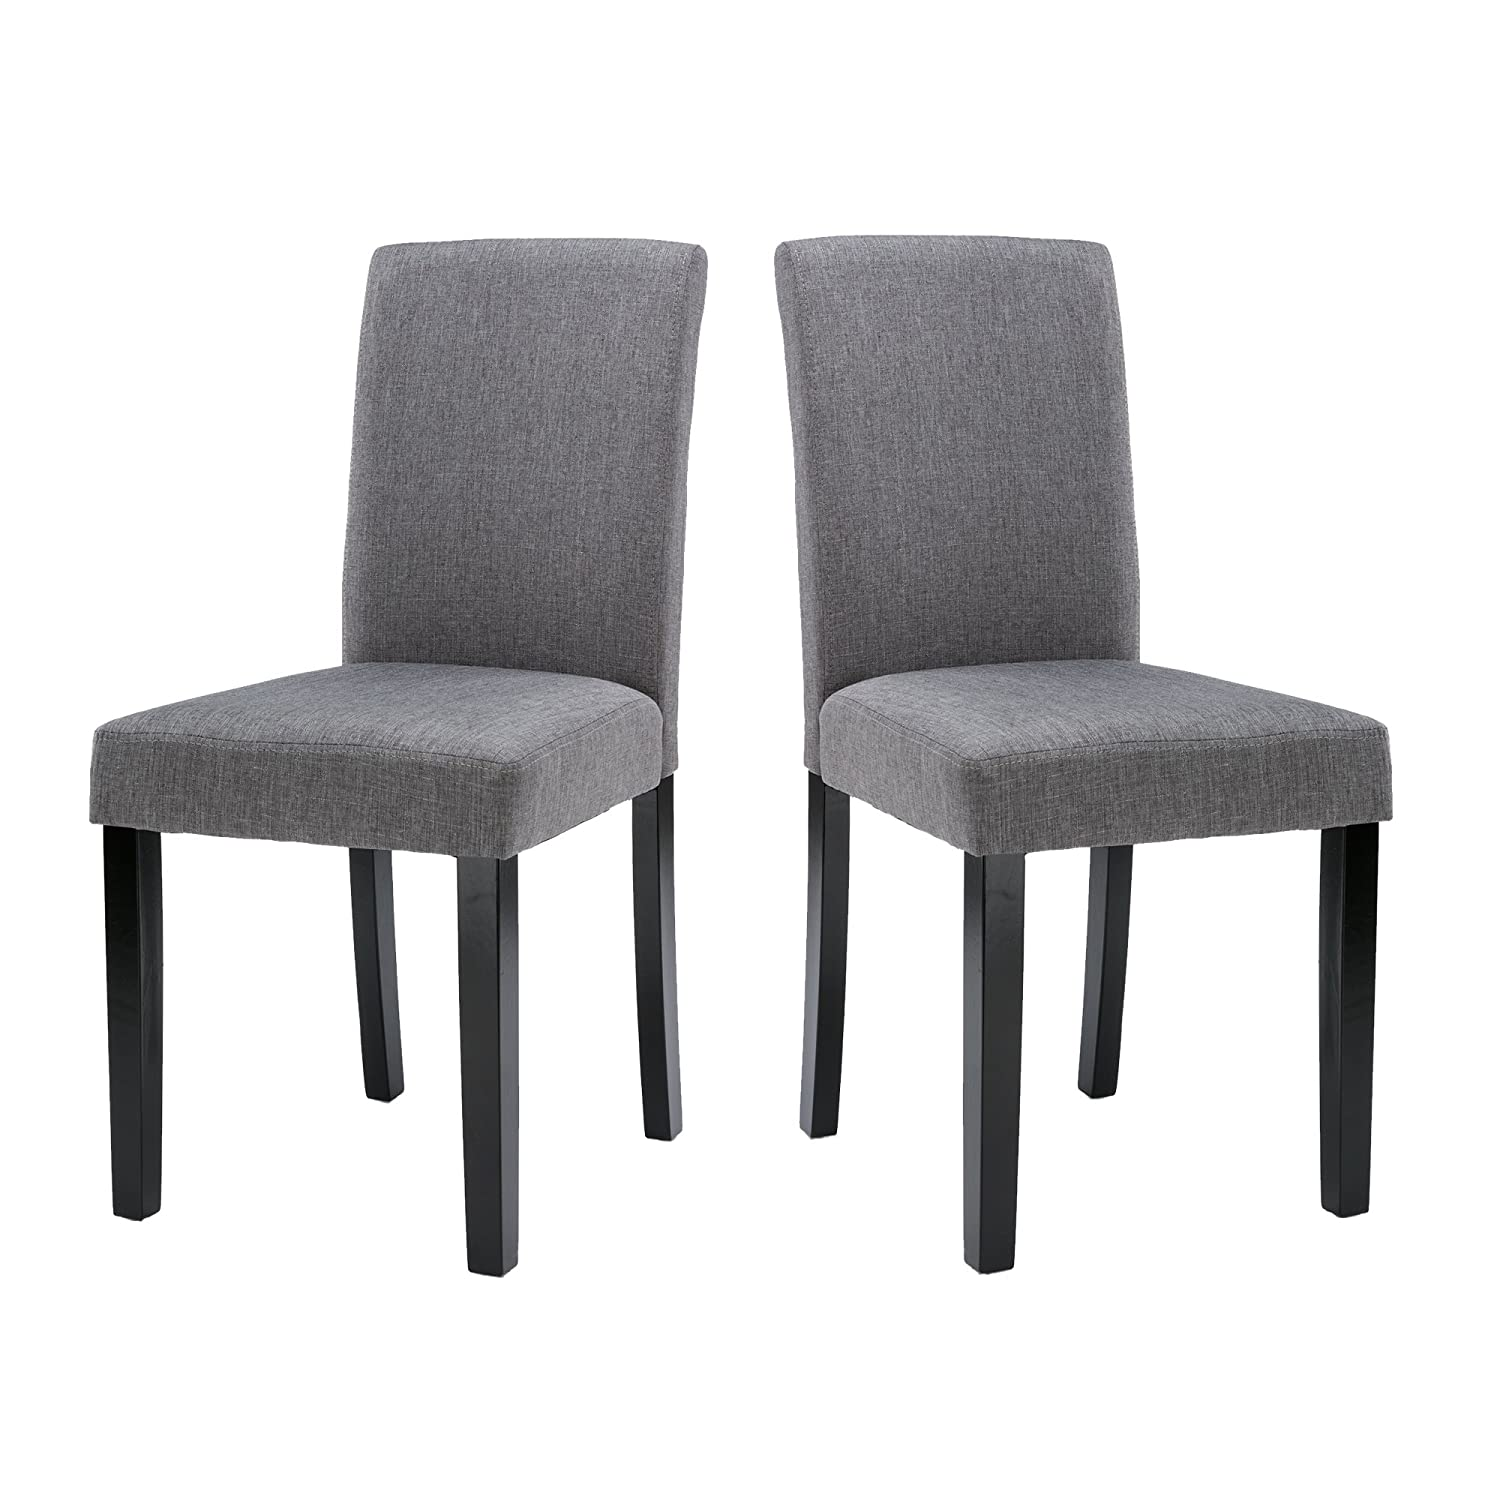 Amazon.com   LSSBOUGHT Set Of 2 Urban Style Fabric Dining Chairs With Solid  Wood Legs(Grey)   Chairs